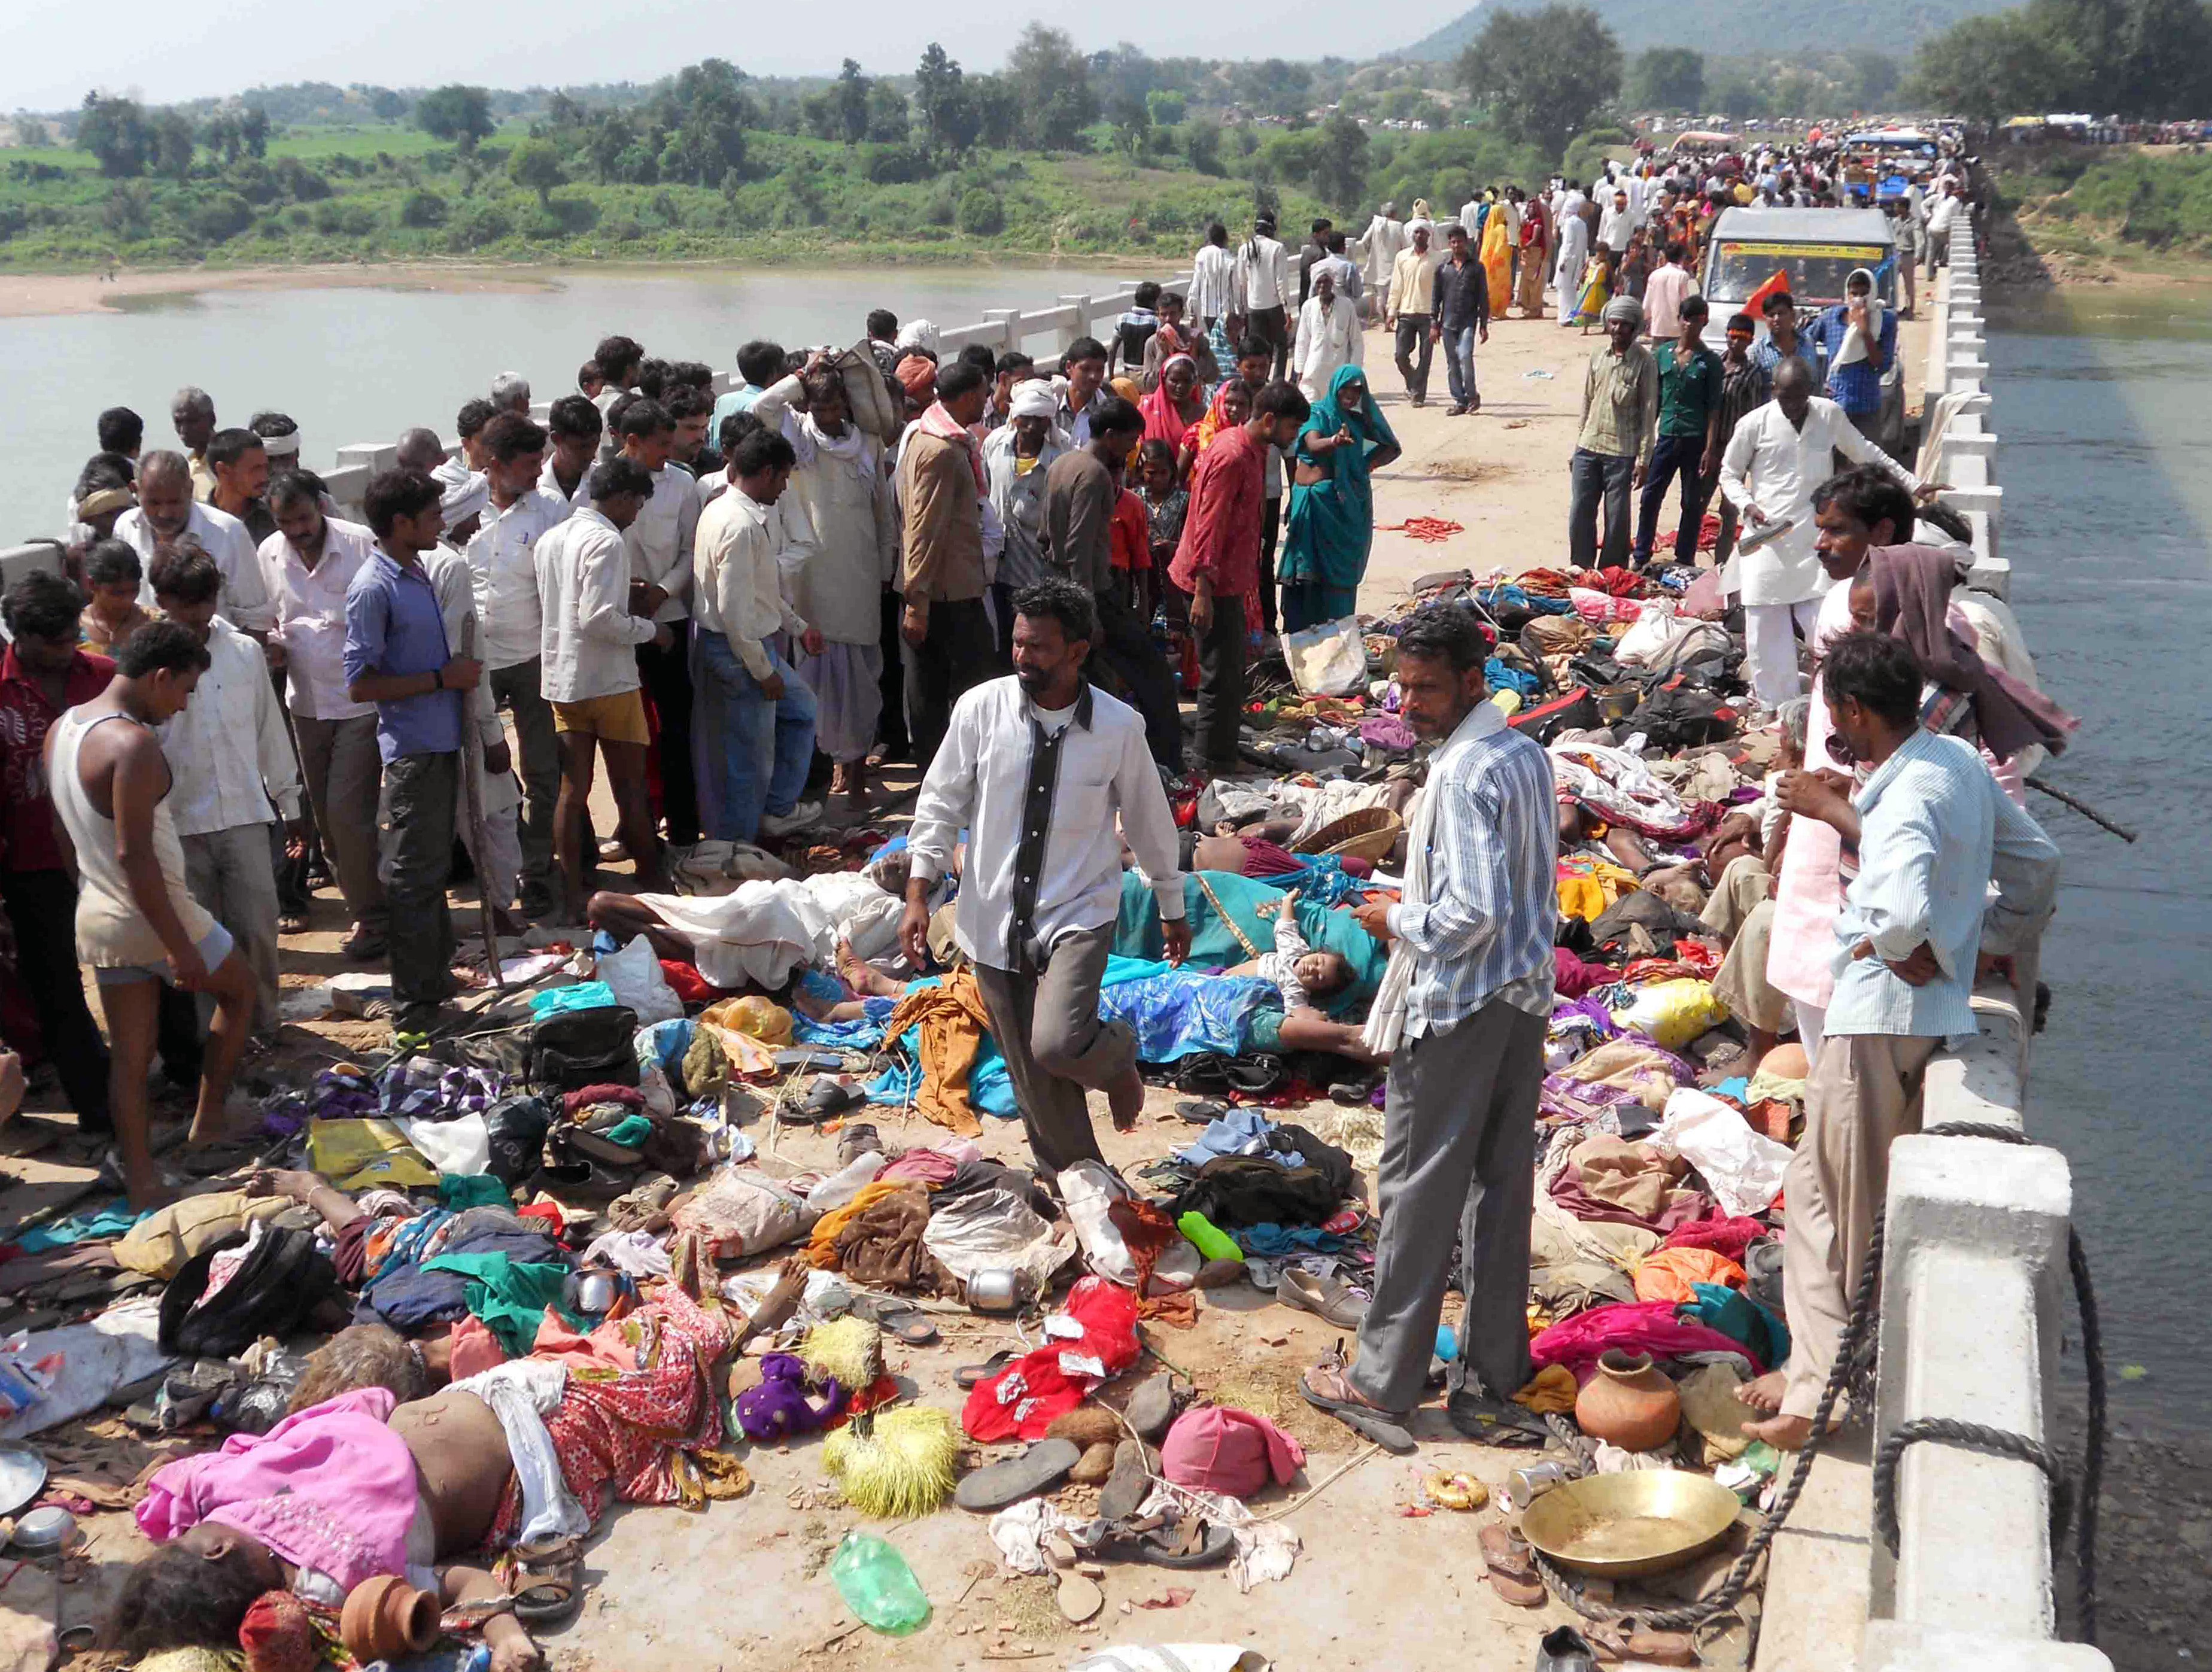 india hindu festival tragedy as 115 die in stampede sparked by a